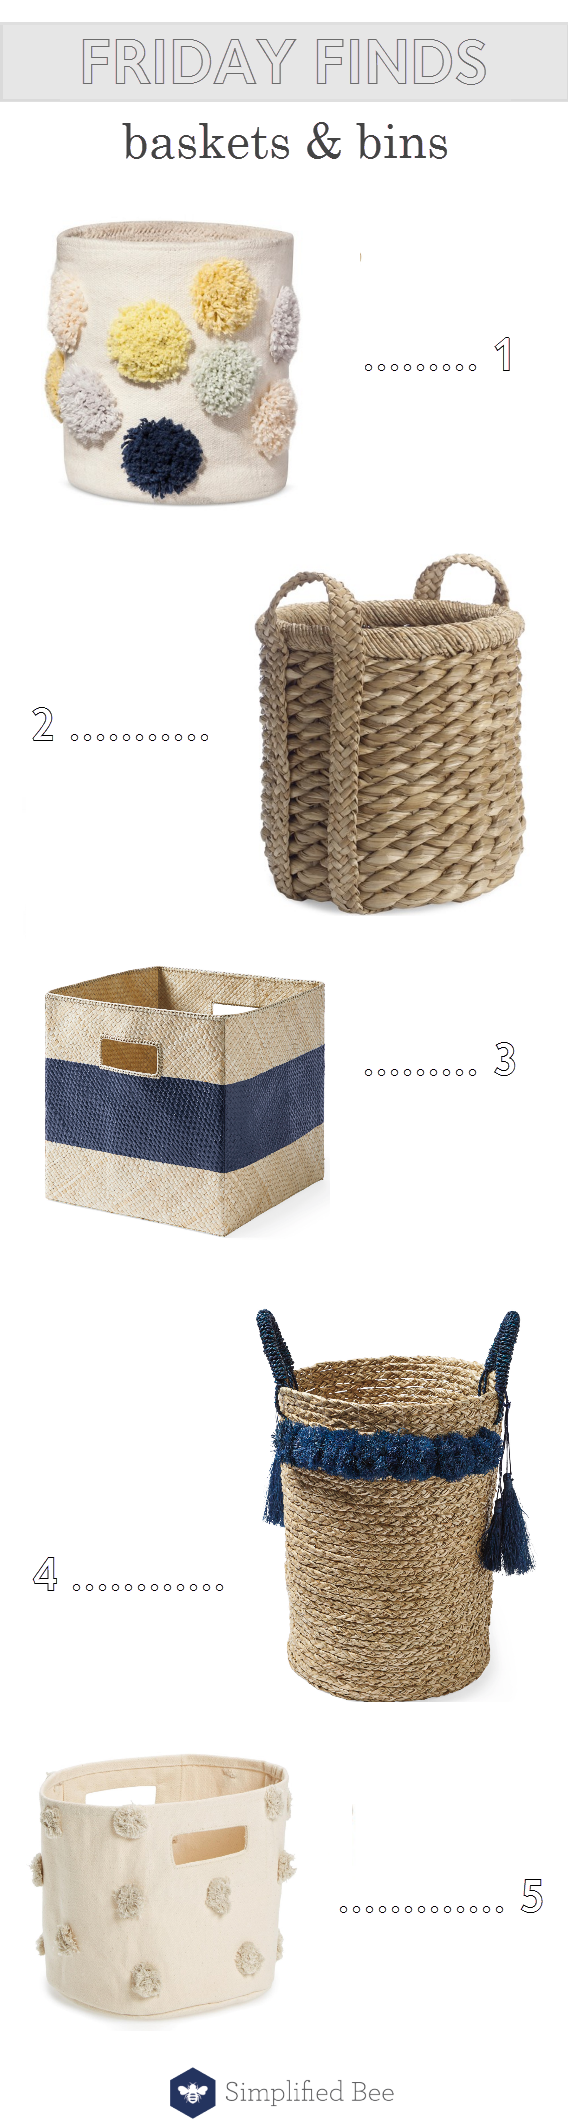 Friday Finds Decorative Baskets Bins Simplified Bee